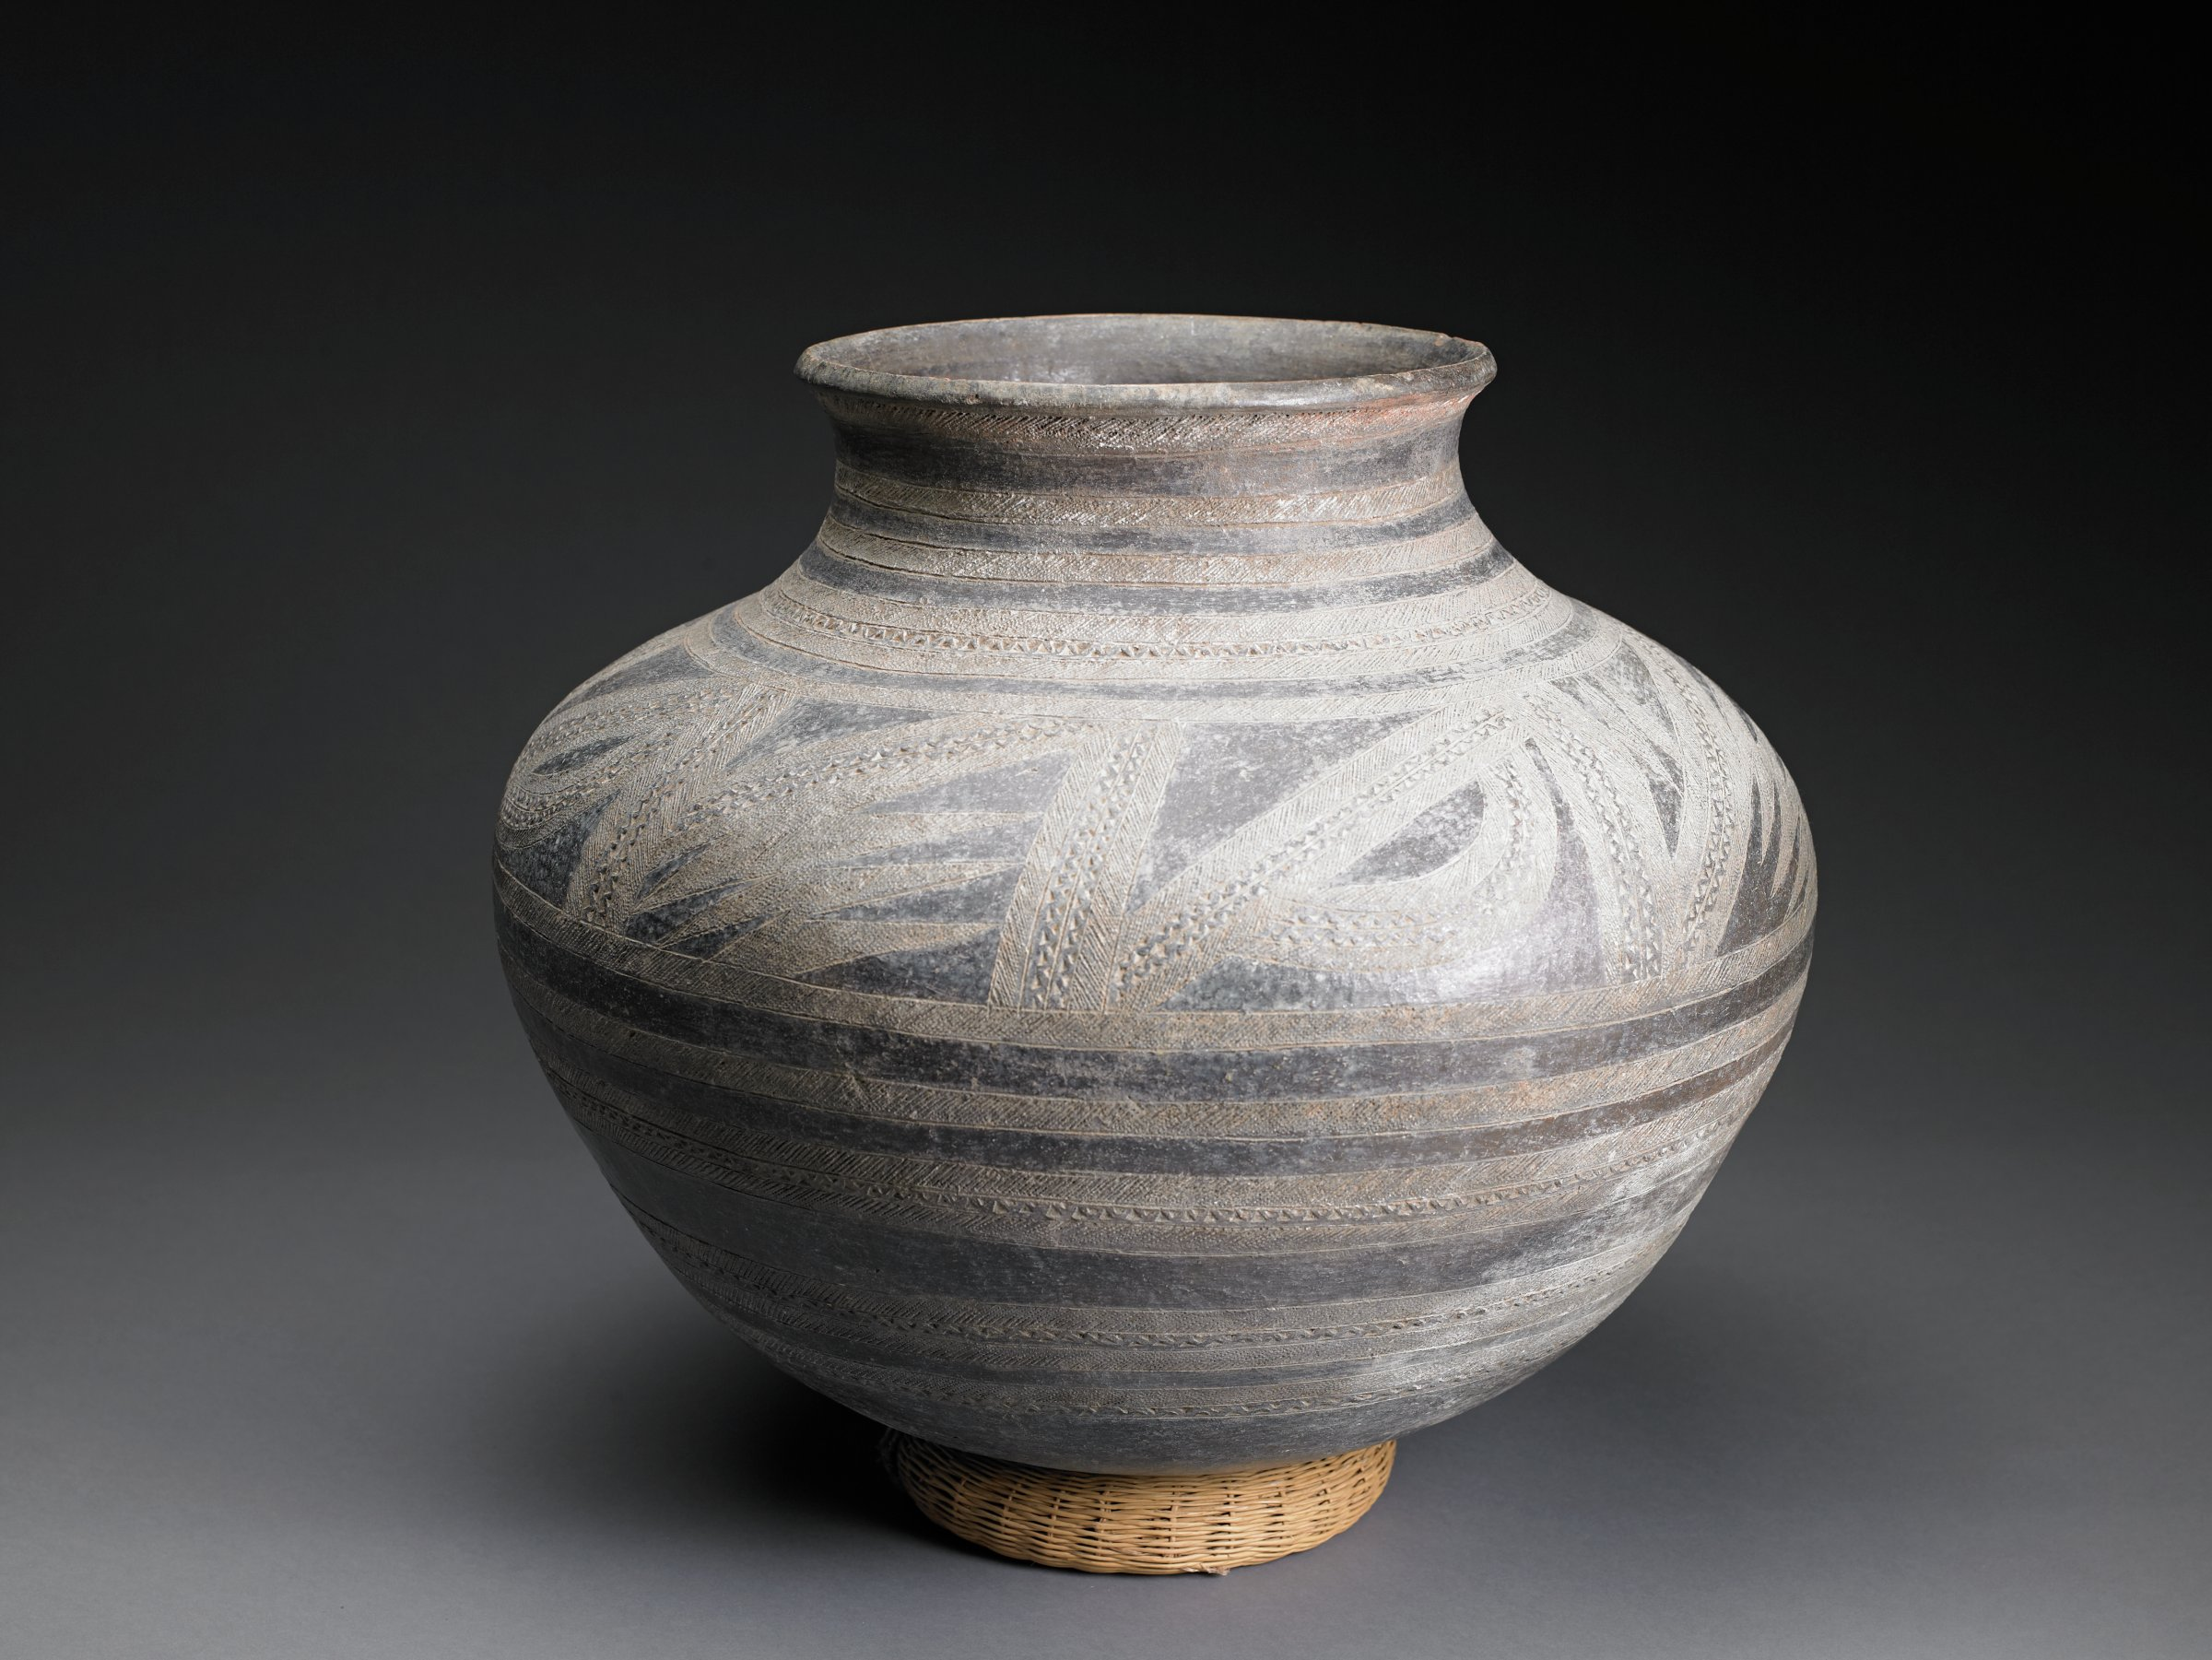 Wide vessel has narrow neck with flaring rim. Bands of incised patterns on neck and body of vessel; shoulder features free-form, ribbon-like patterns.